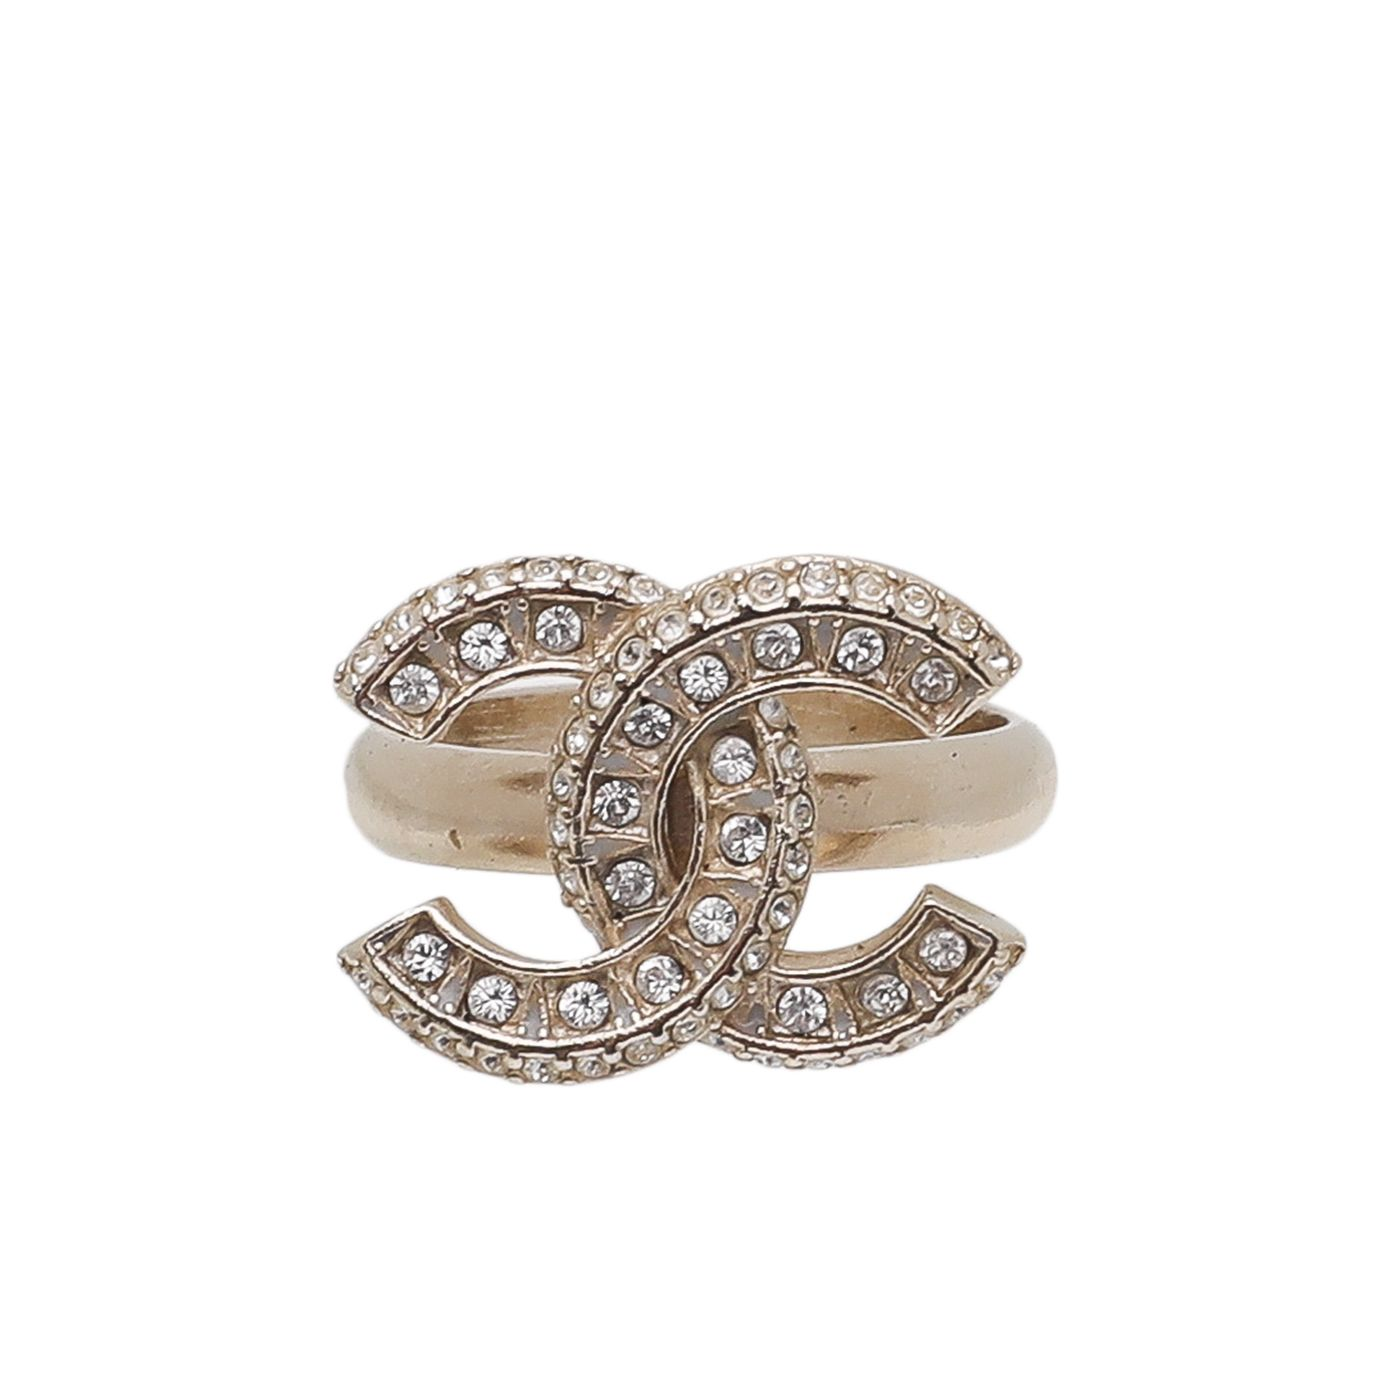 Chanel Light Gold CC with Rhinestones Ring